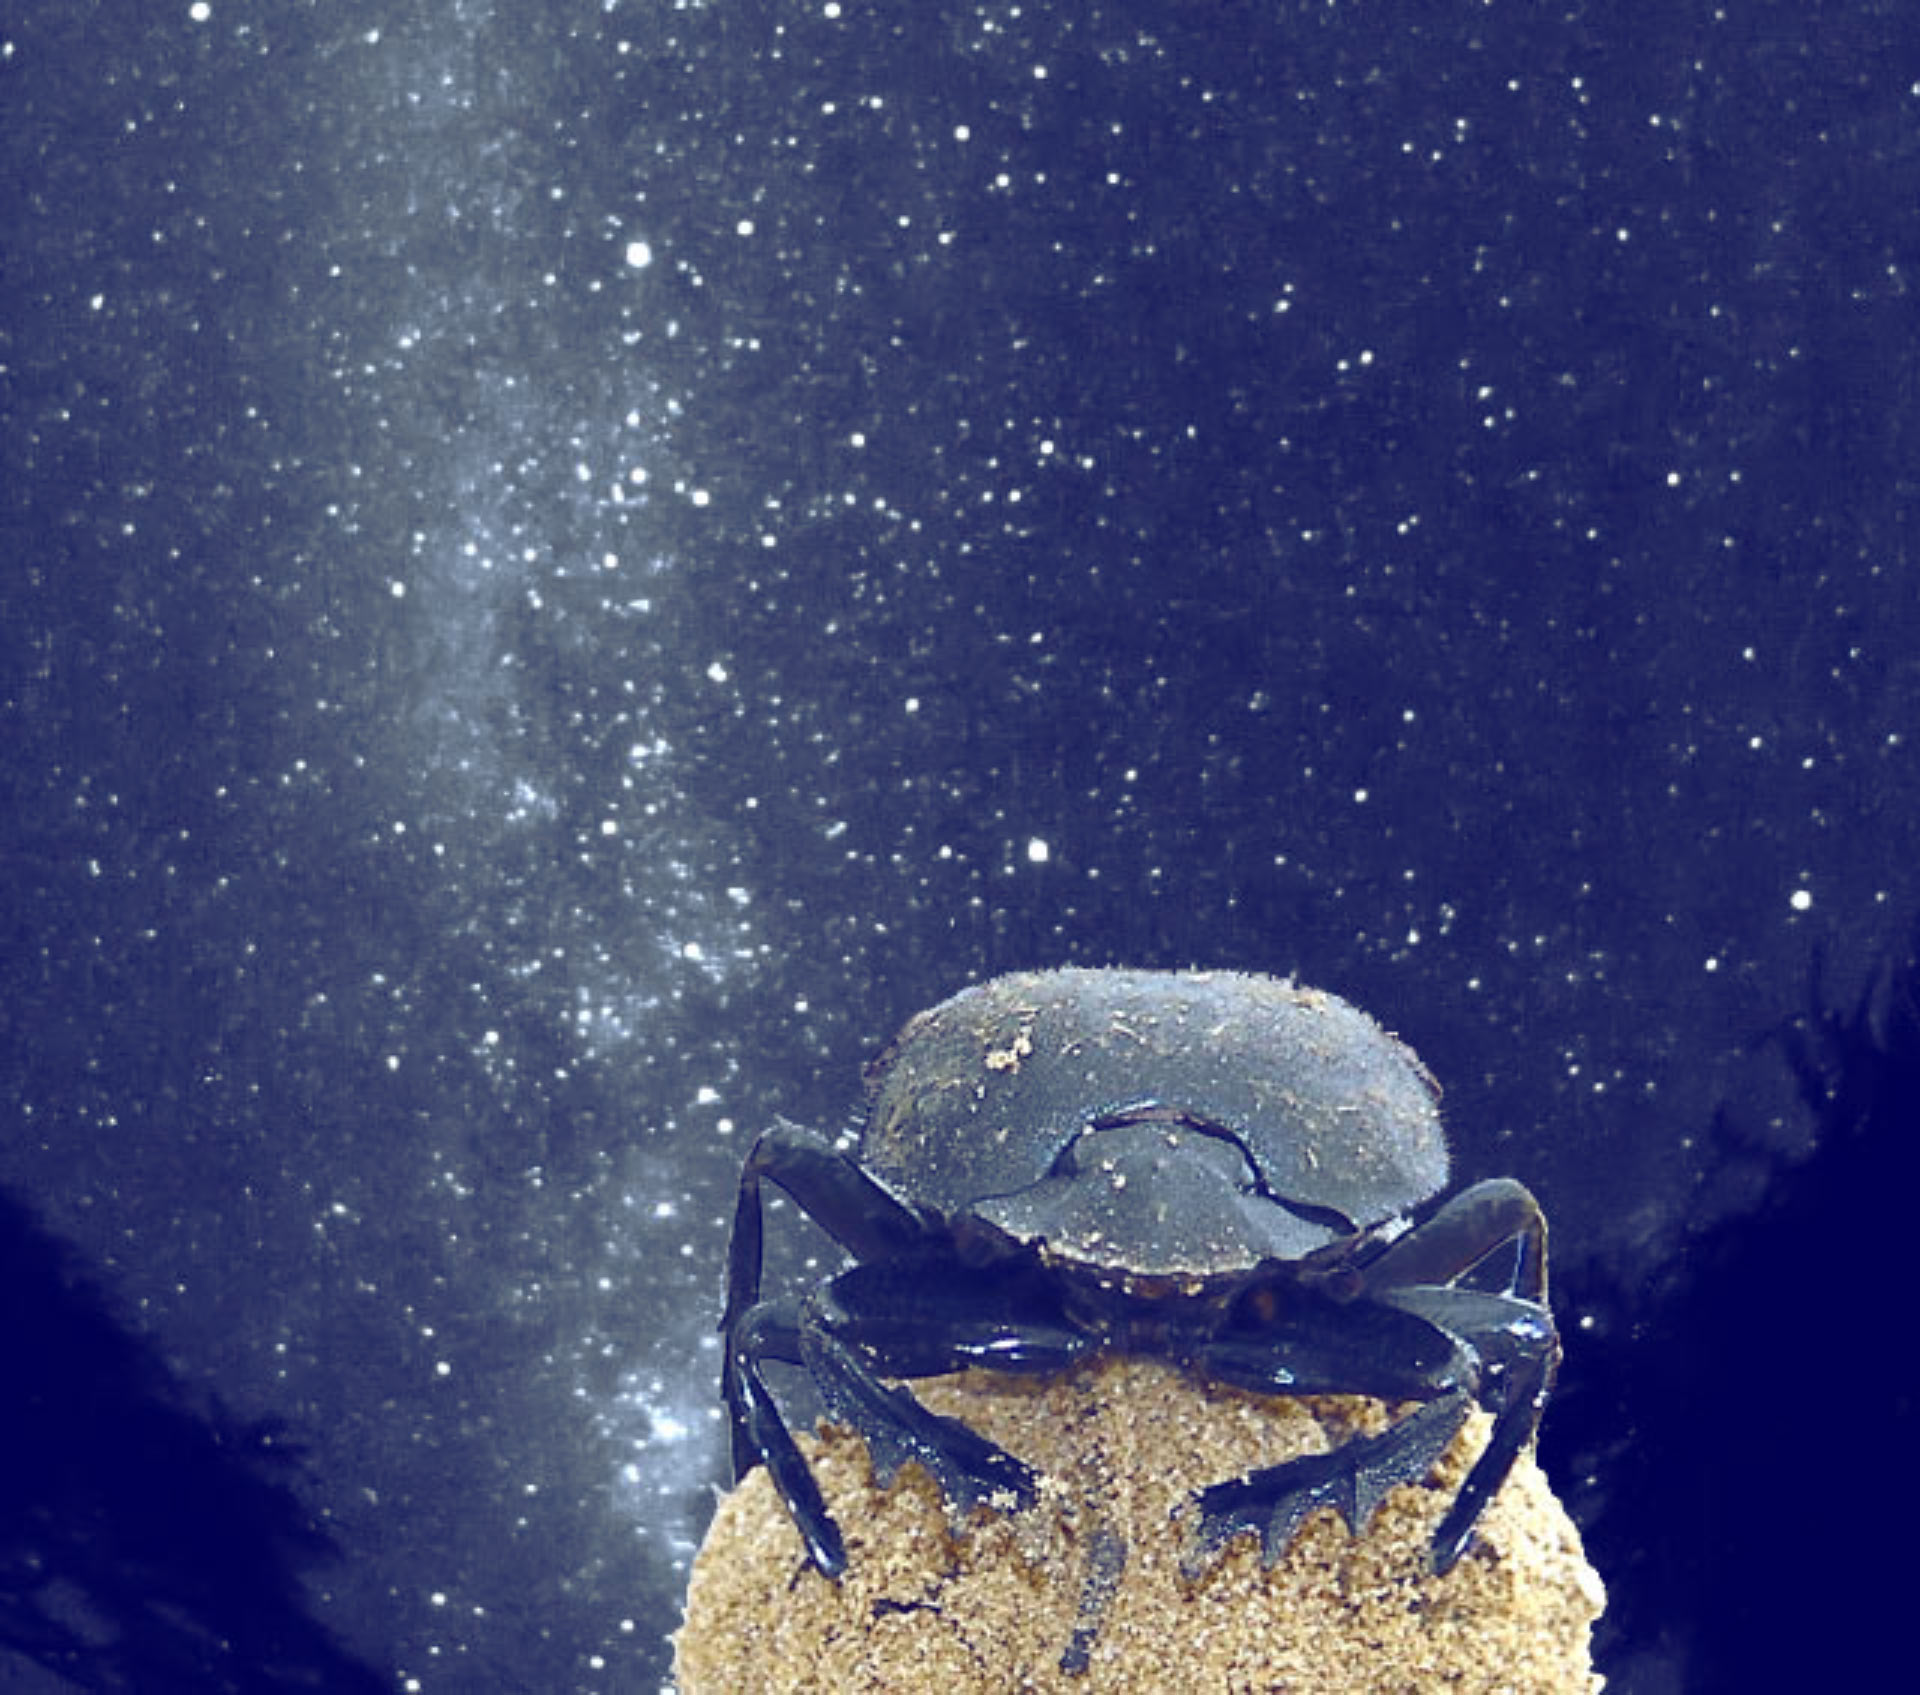 Image of: Spotted Cats African Dung Beetles scarabaeus Satyrus Use The Glow Of The Milky Way To Navigate Scinewscom Nocturnal Animals Use Stars For Orientation Biology Scinewscom